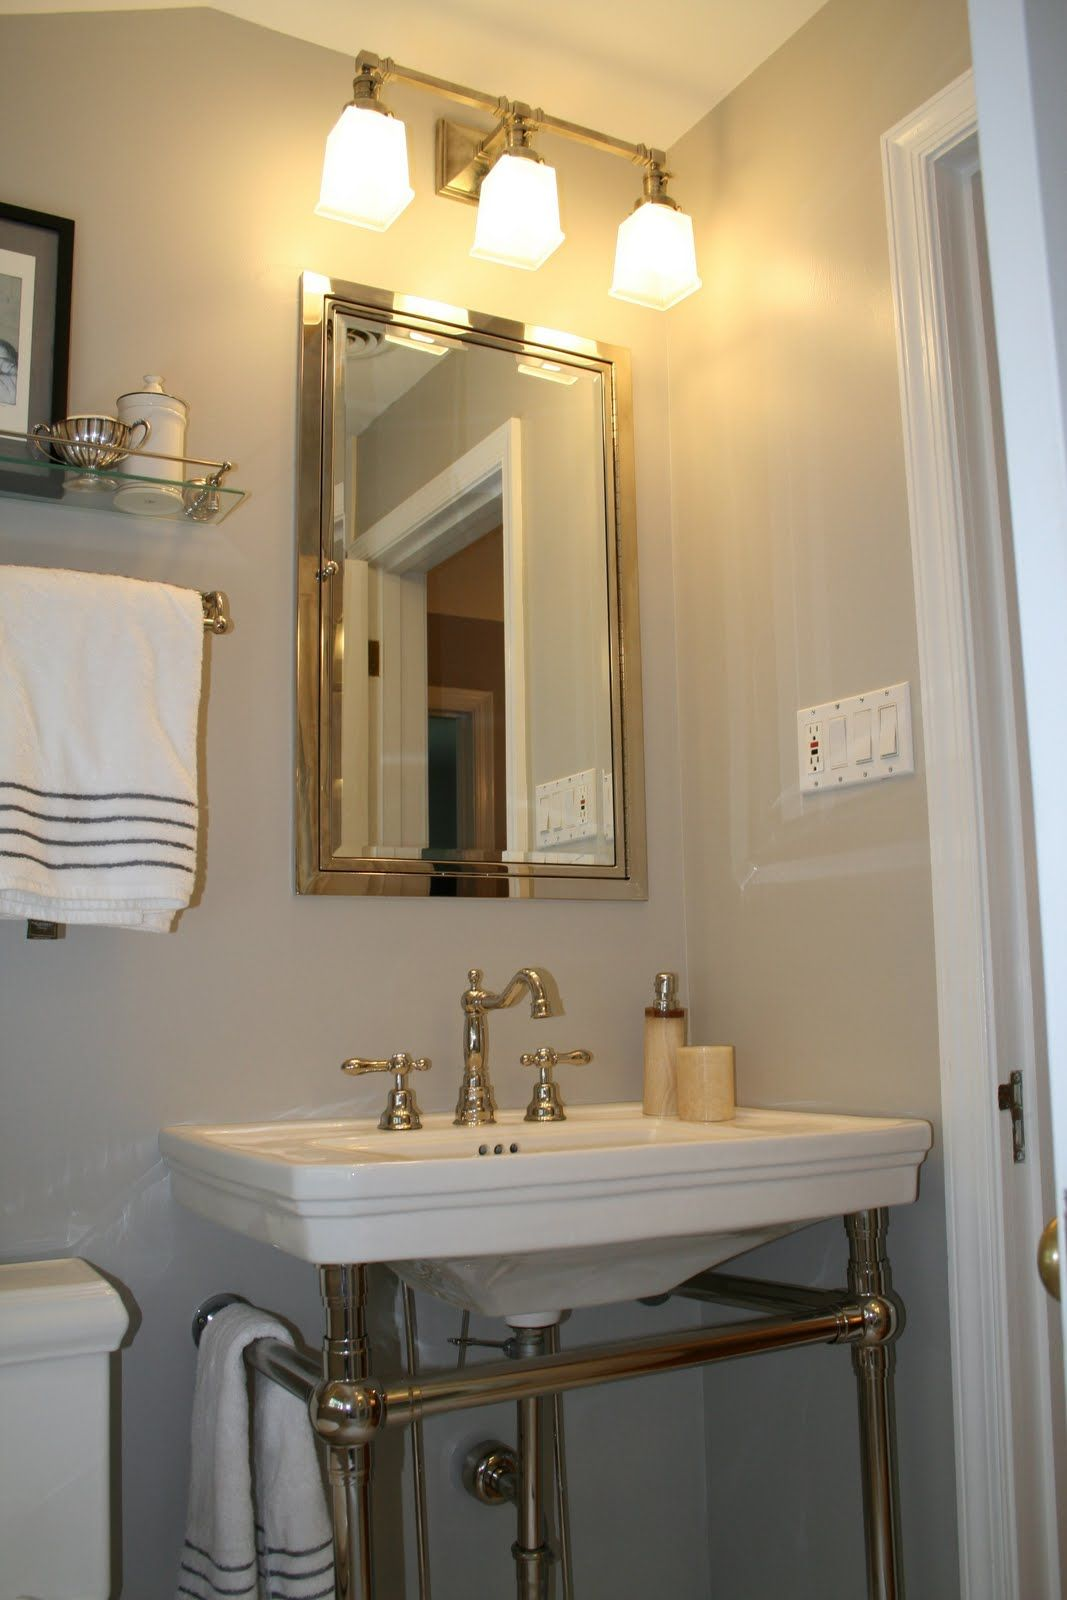 Superbe Image Result For Inset Bathroom Medicine Cabinets With Mirrors